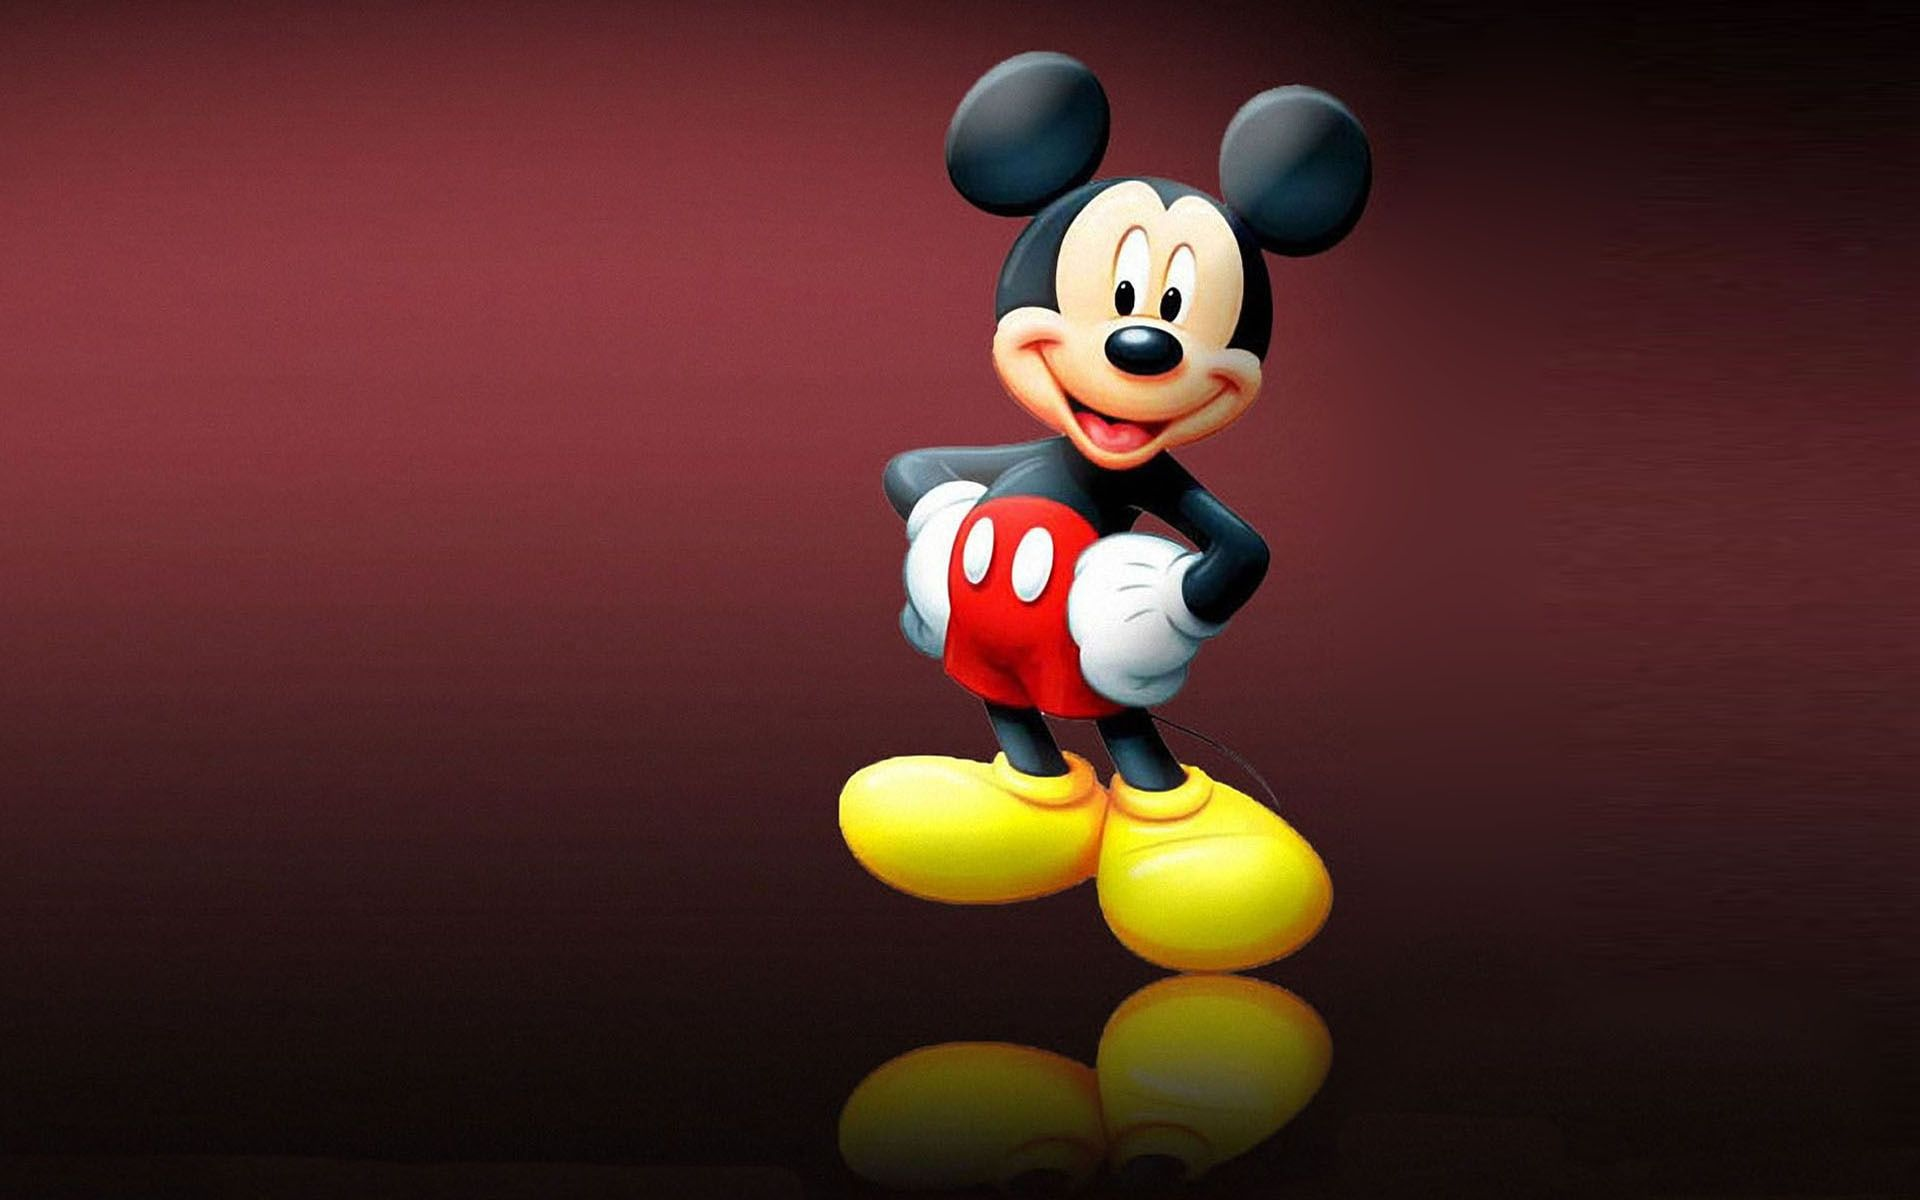 Mickey Mouse Cartoon Wallpaper Hd For Mobile Phones And Laptops 1080p Wallpaper Hdwallpaper Desk Cartoon Wallpaper Cartoon Wallpaper Hd Cartoon Background